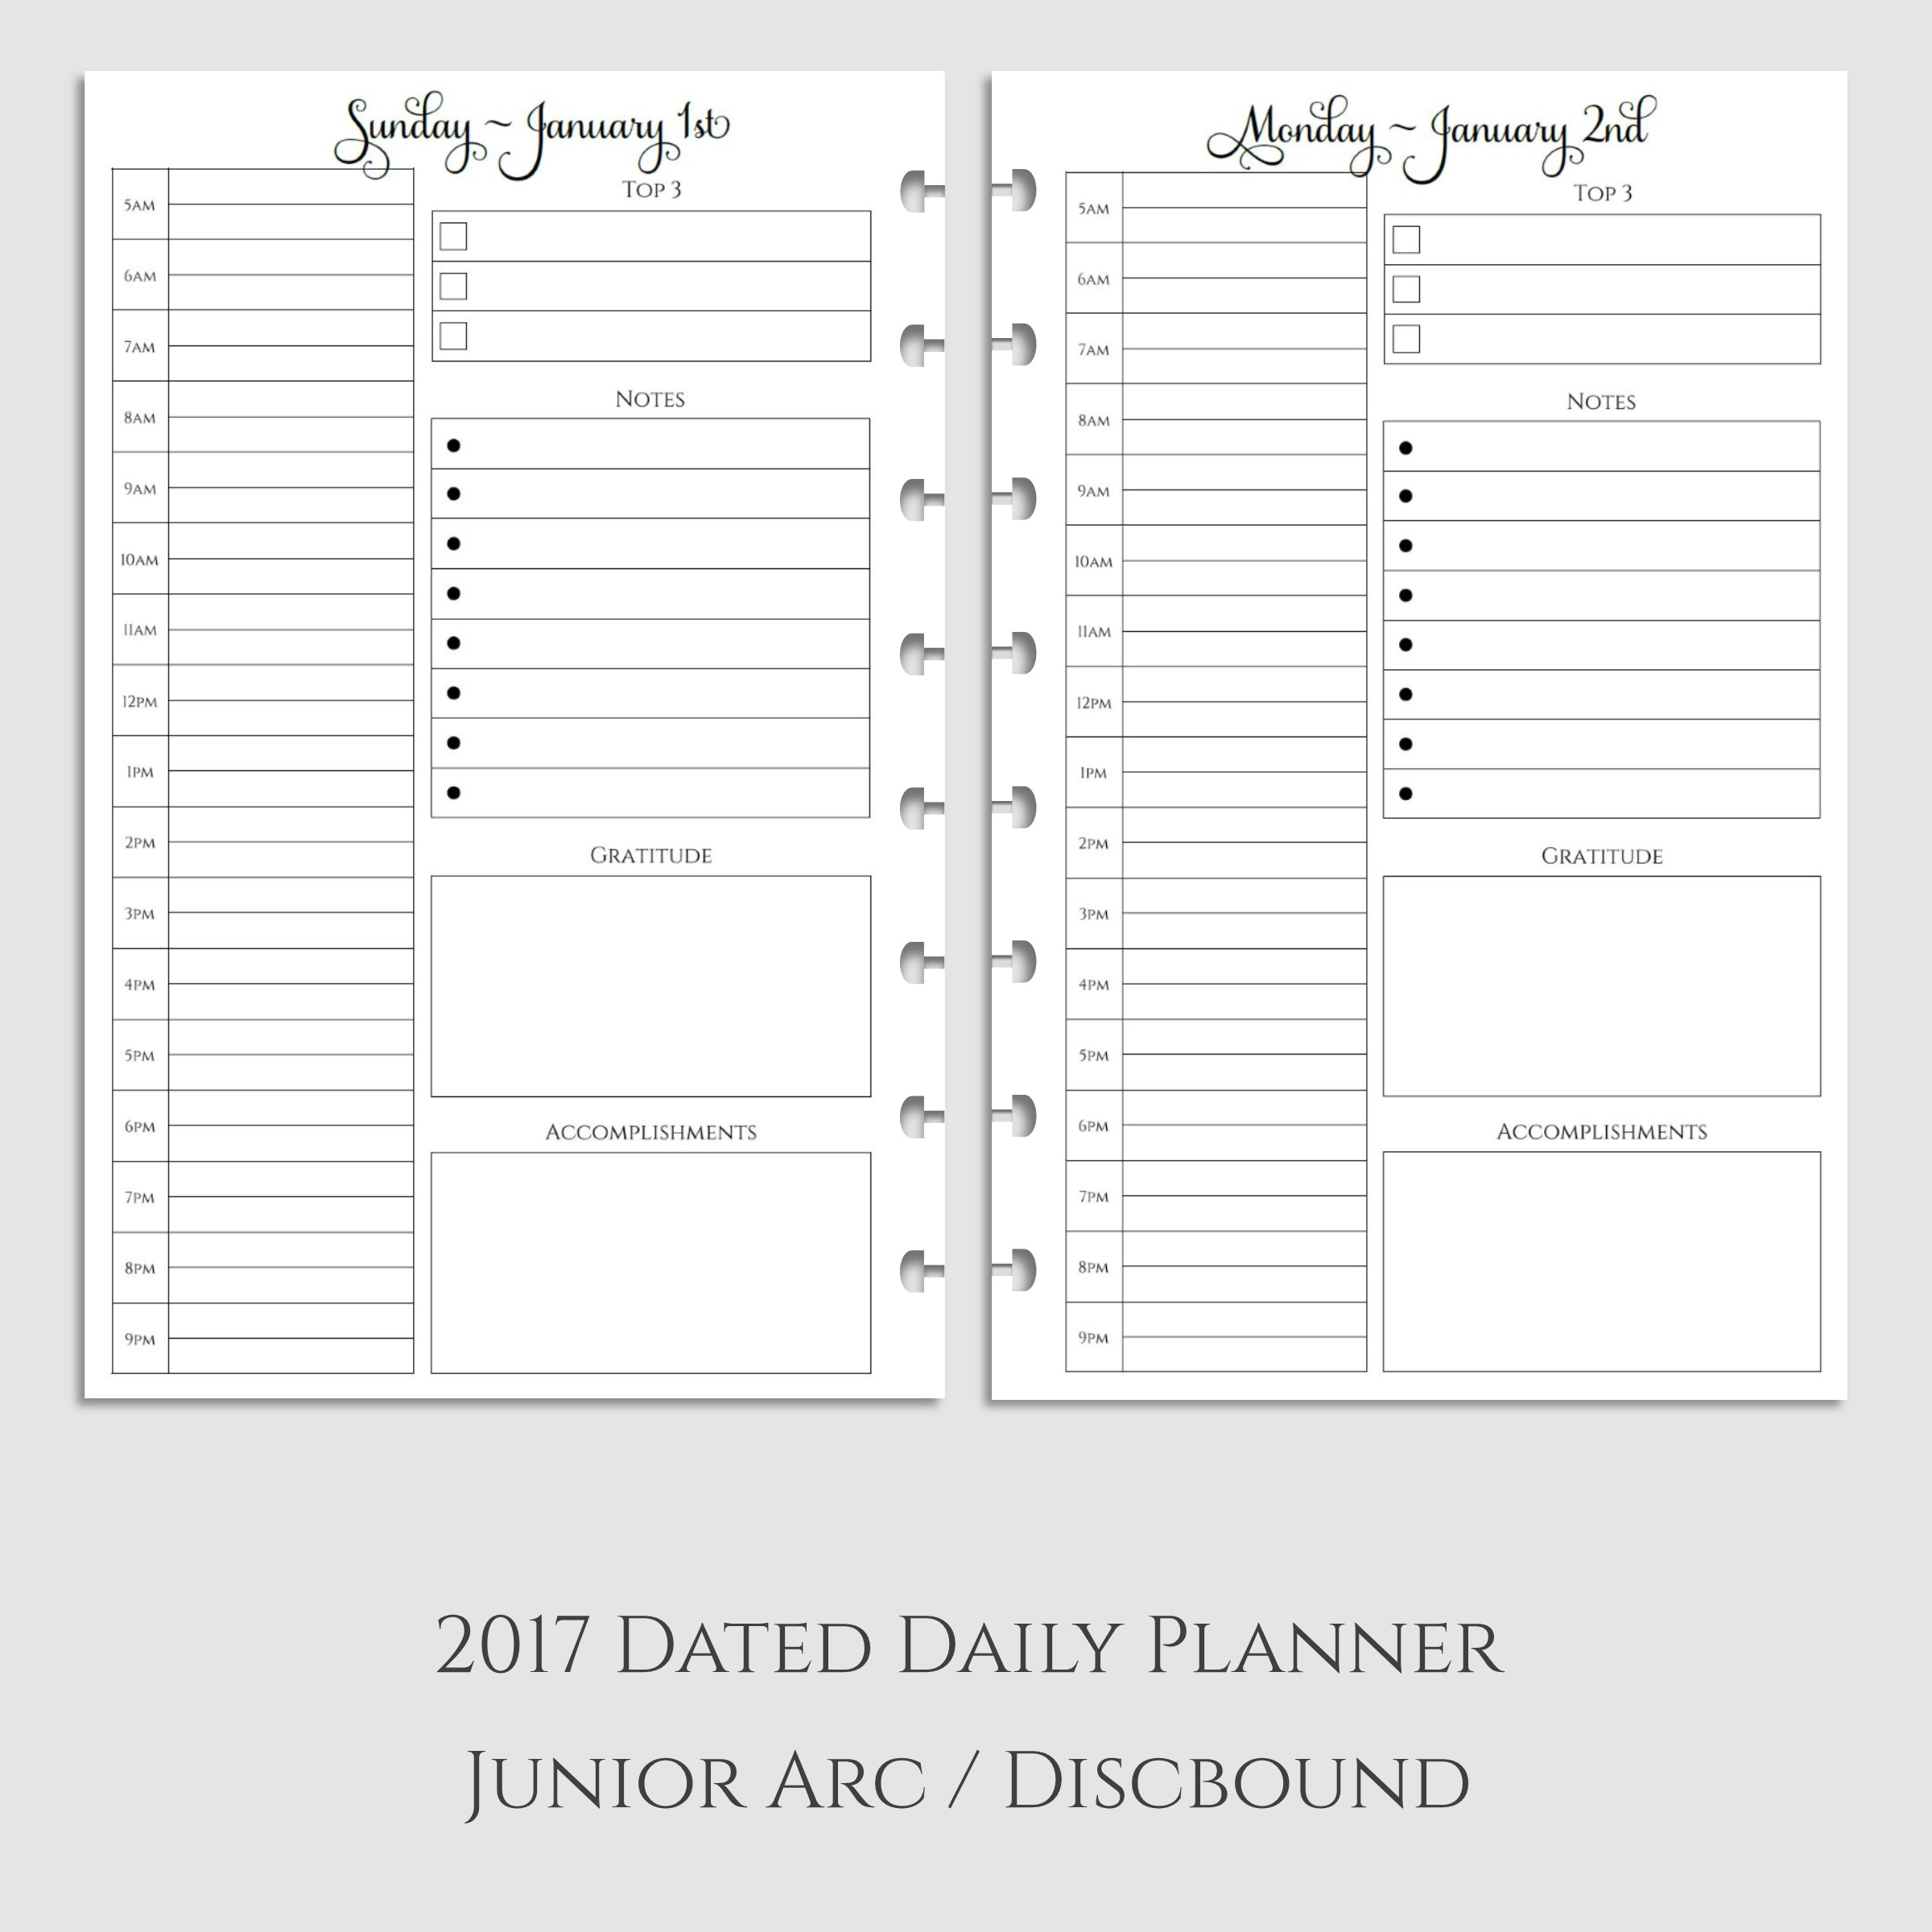 2017 Daily Planner Inserts with Daily Gratitude & Accomplishments ~ Discbound